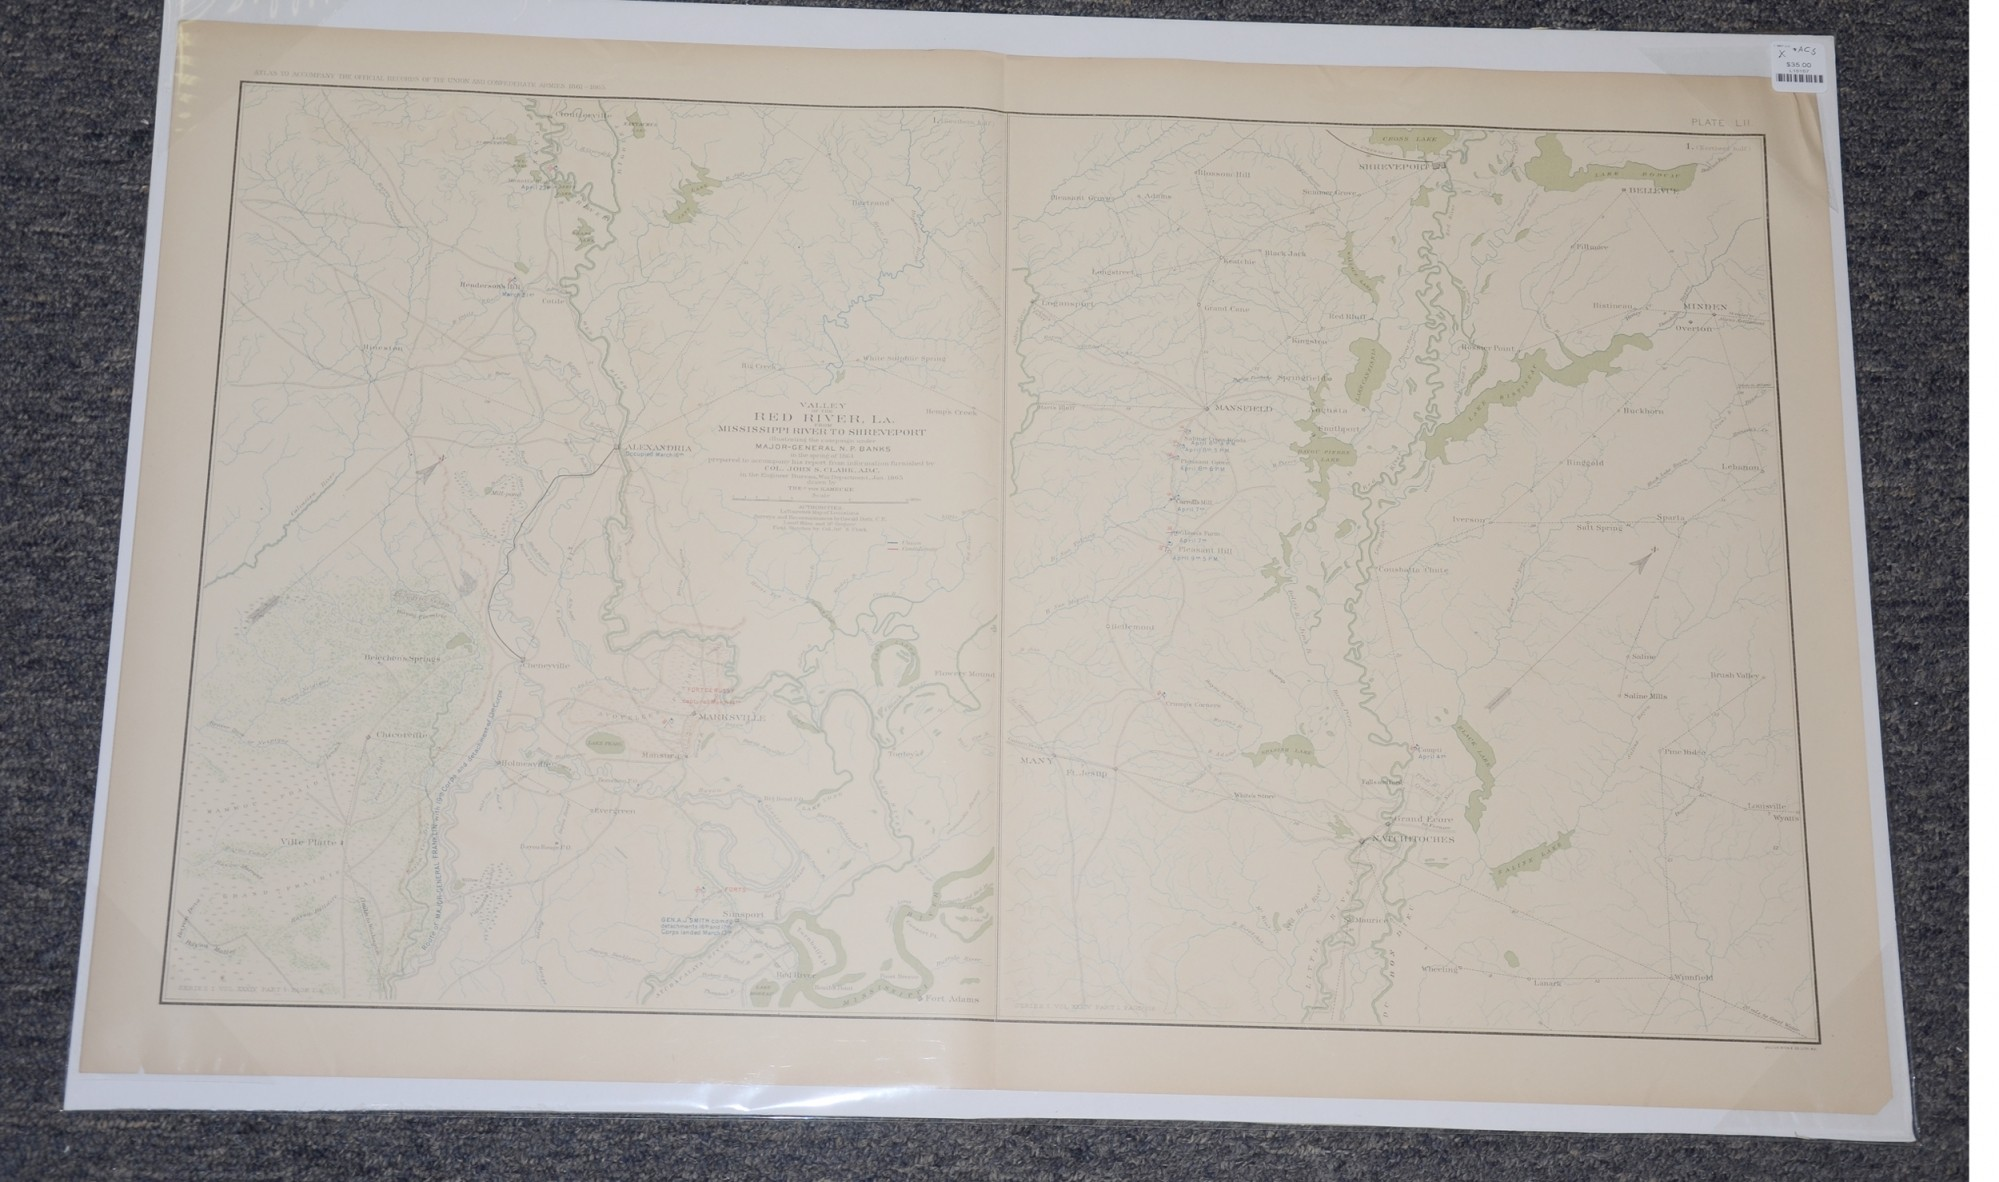 MAP OF VALLEY OF THE RED RIVER LOUISIANA FROM MISSISSIPPI RIVER TO SHREVEPORT